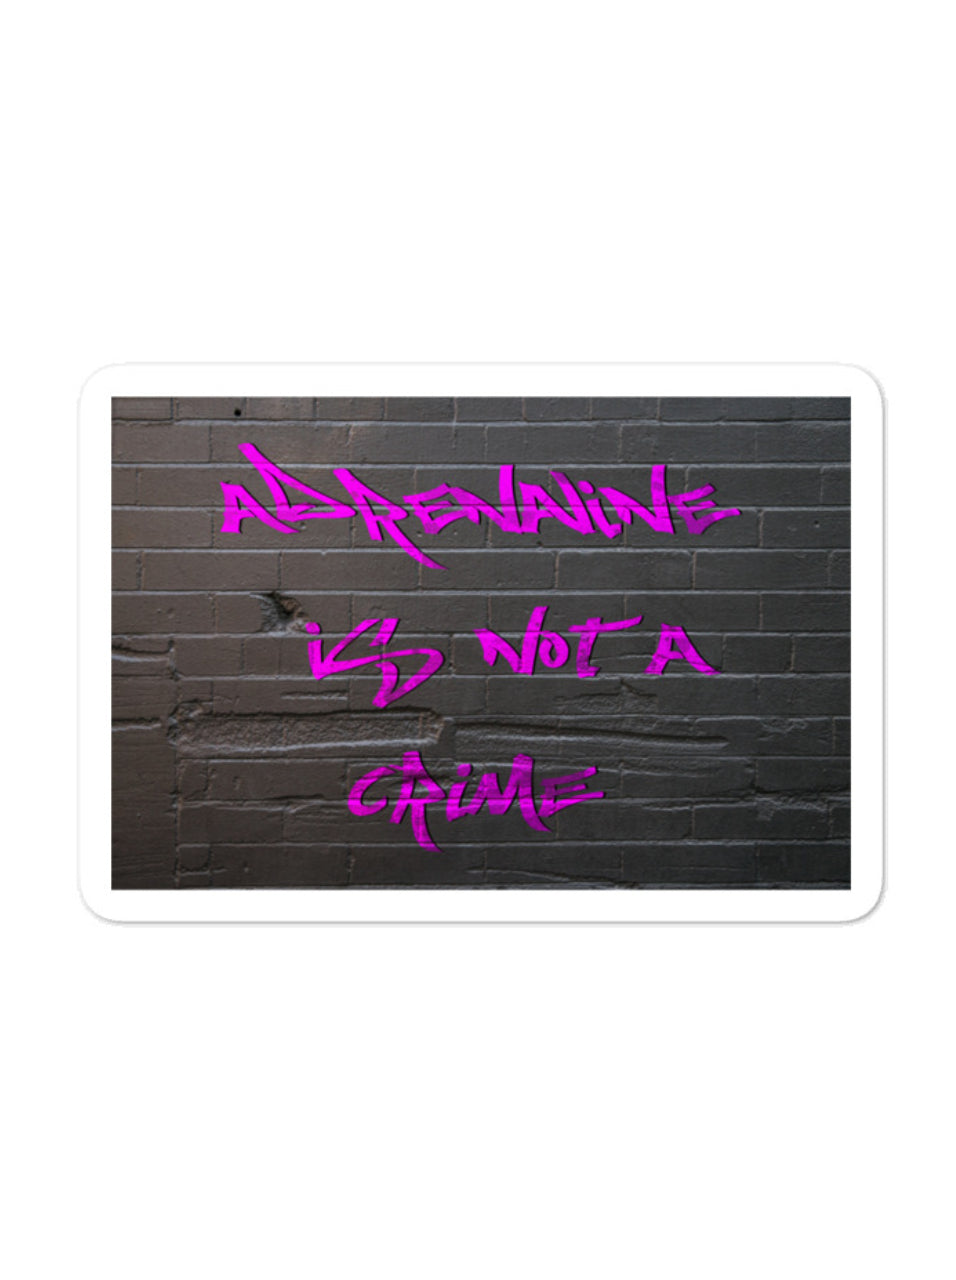 Adrenaline Pink Graffiti Sticker